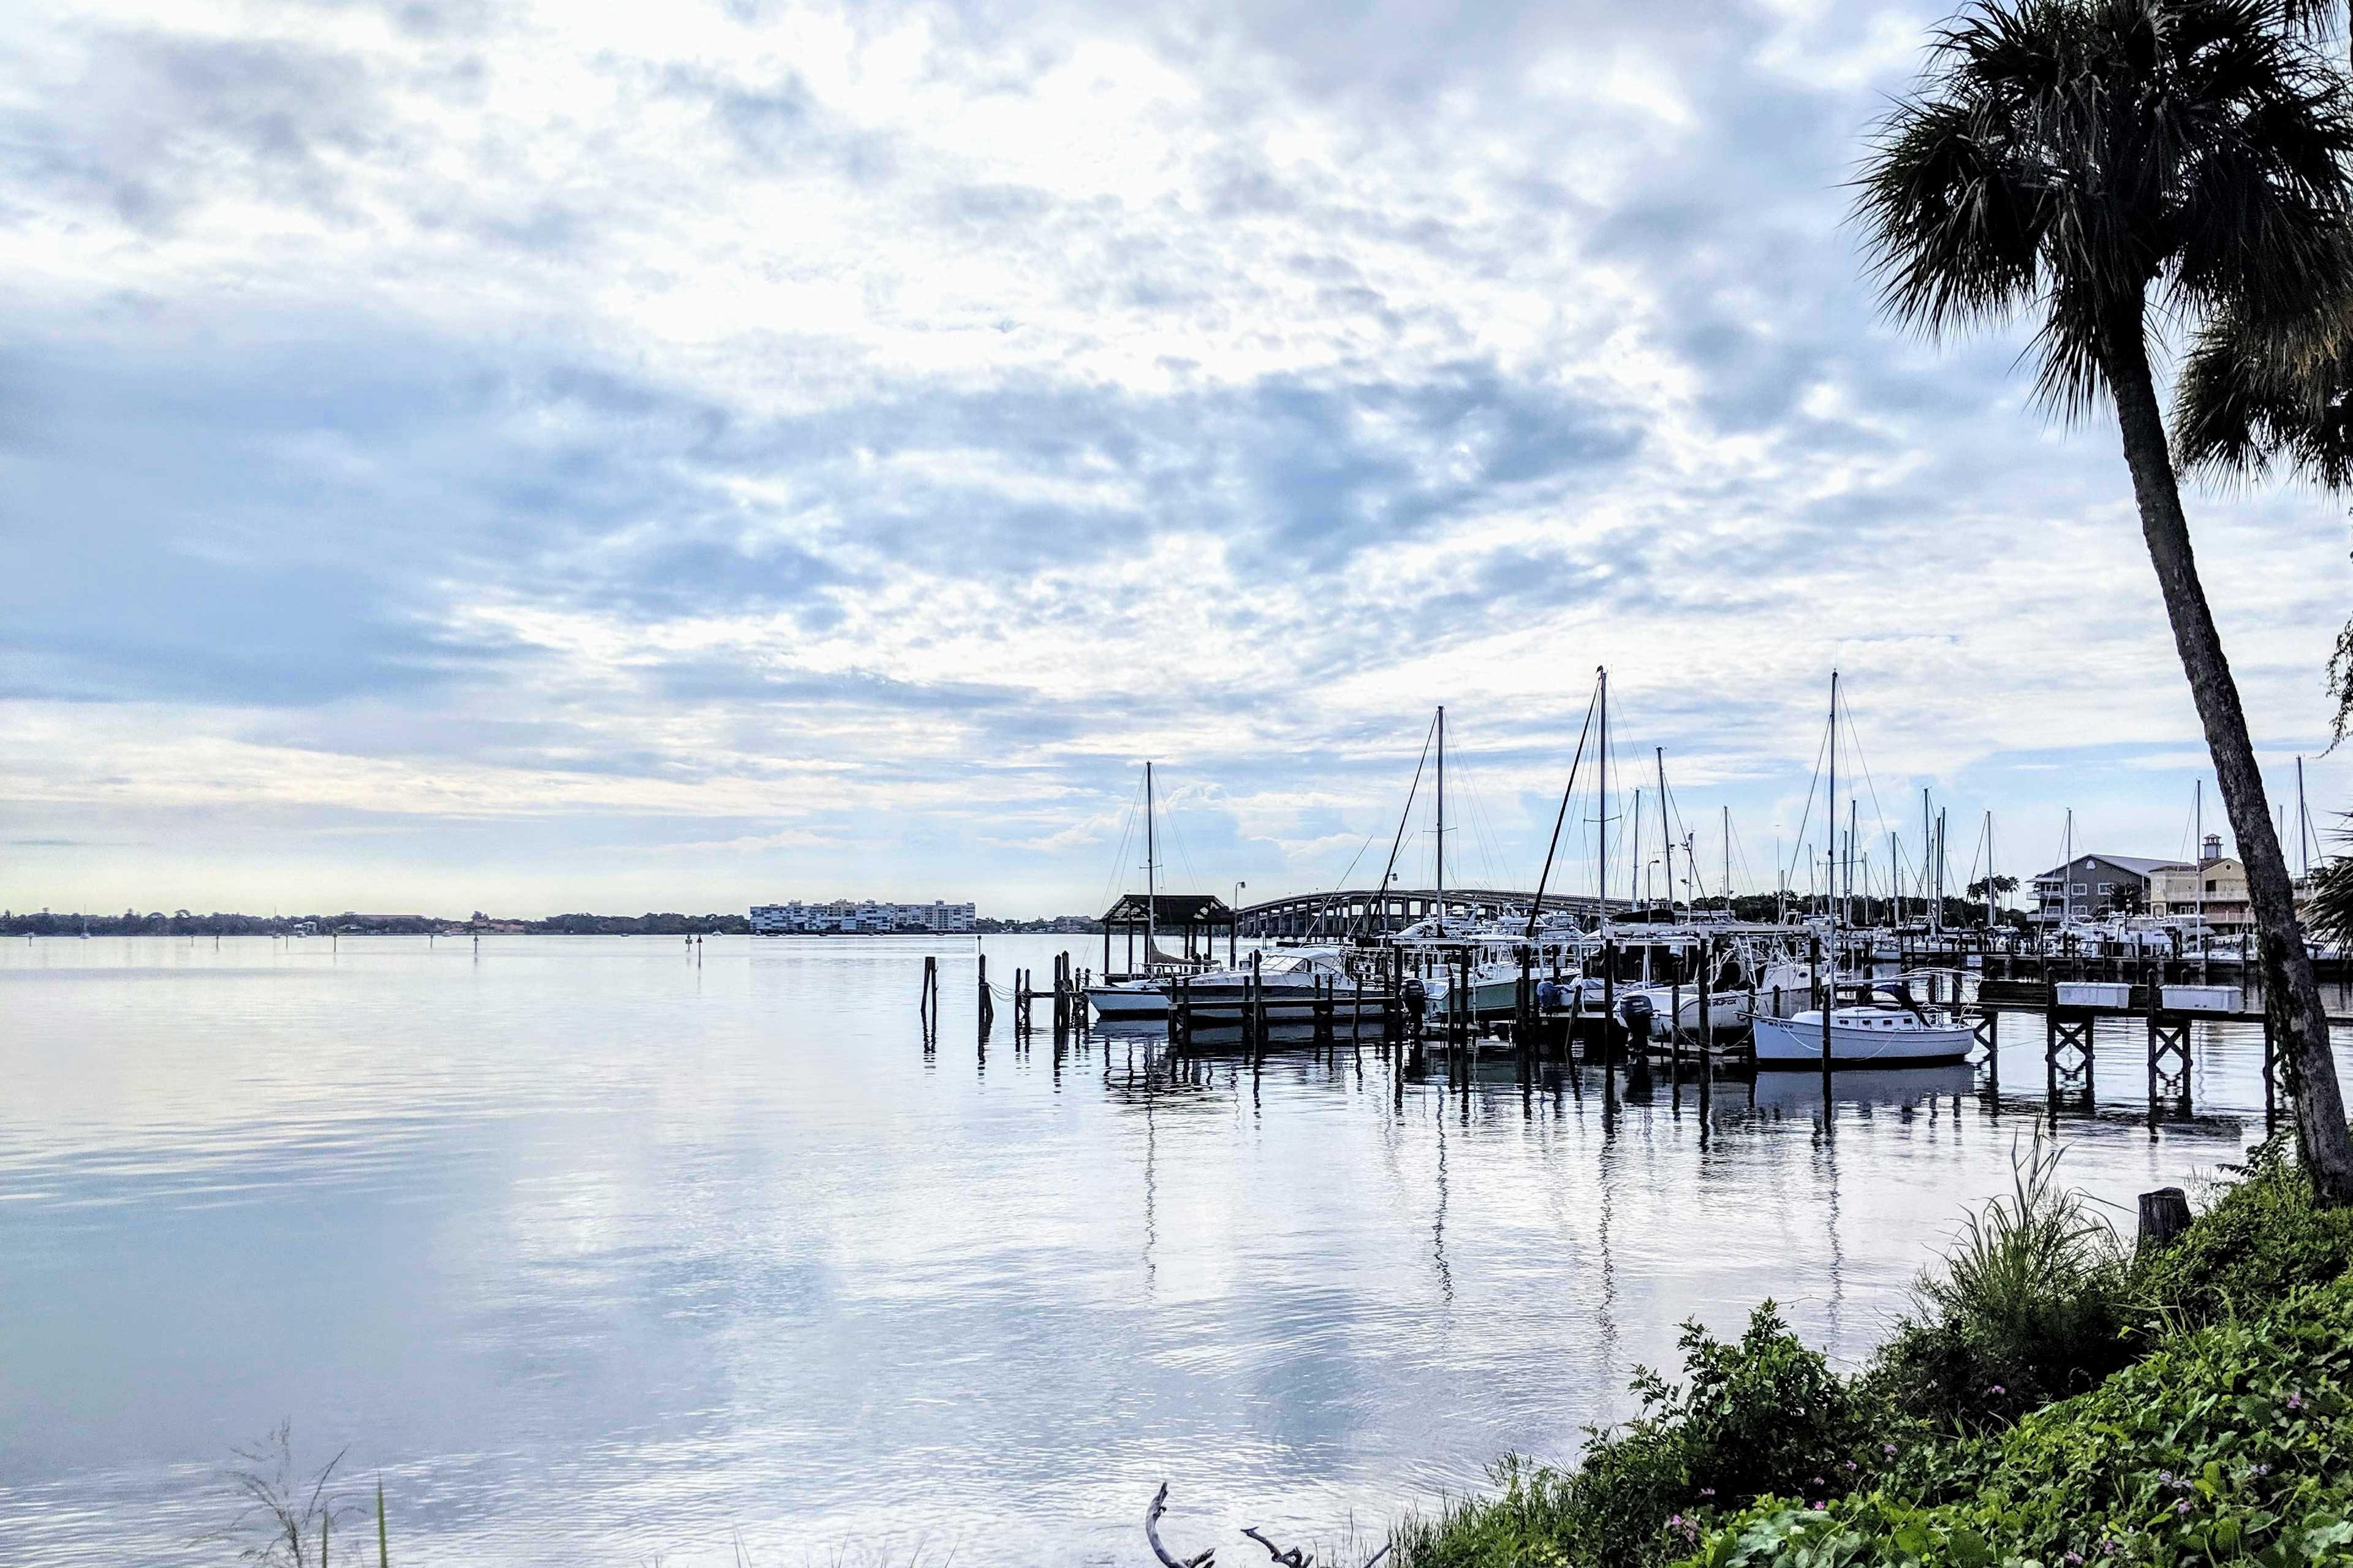 Walk down to the Intracoastal Waterway, or head over the bridge to the beach.